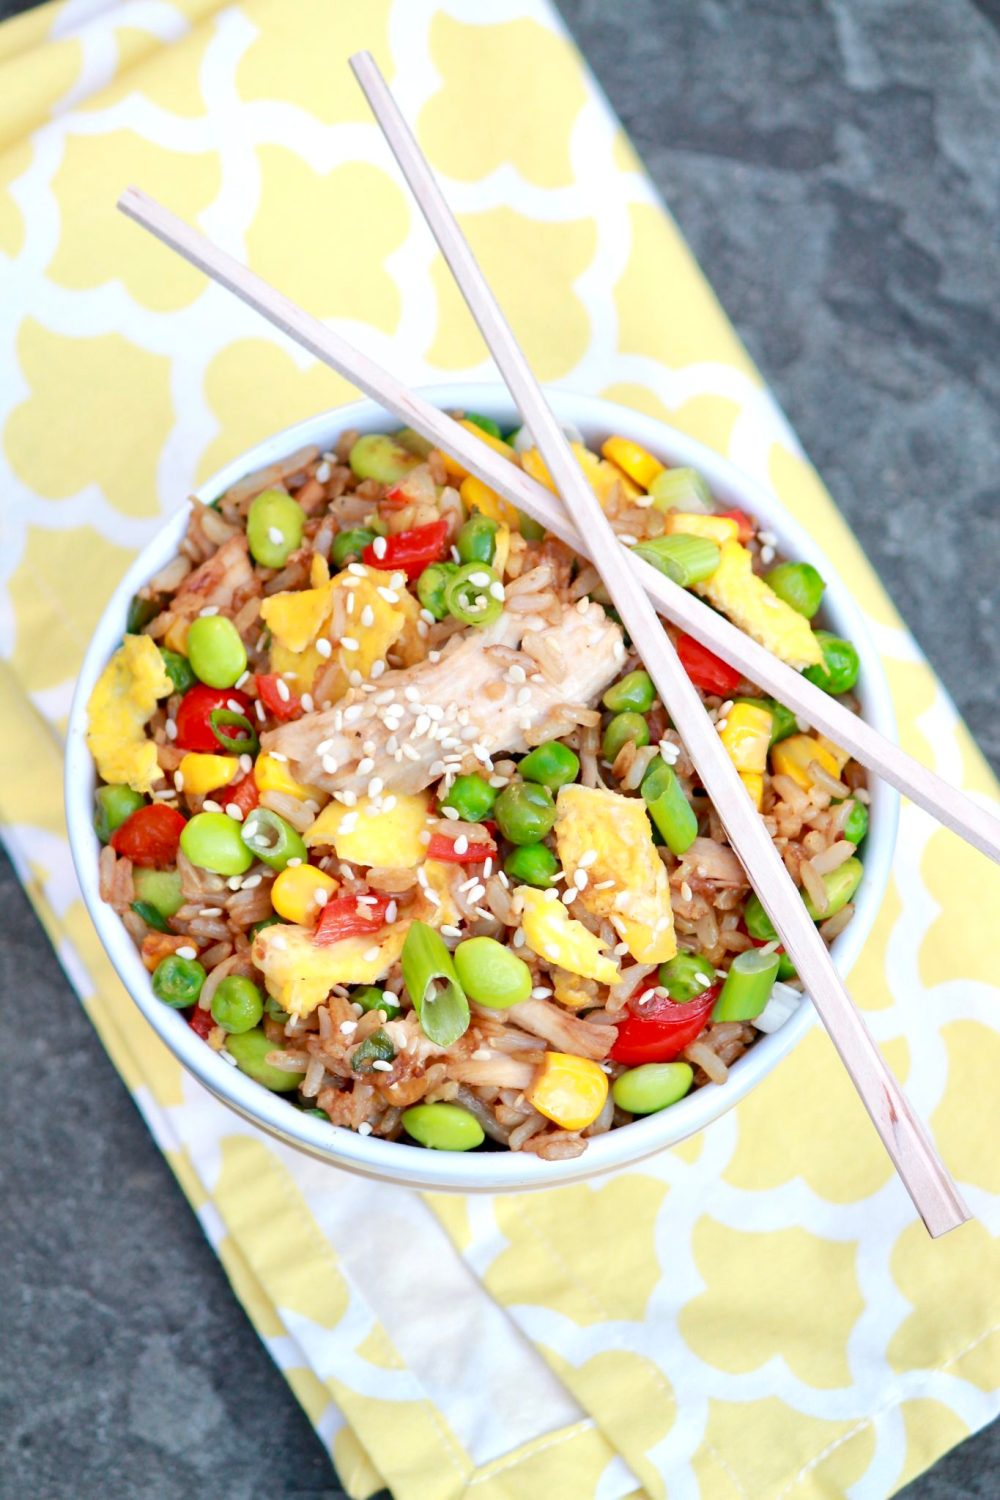 Chicken Fried Rice -The flavor of homemade fried rice will rival your favorite takeout version and be healthier, too. Make use of leftover rice and chicken for the easiest of meals.